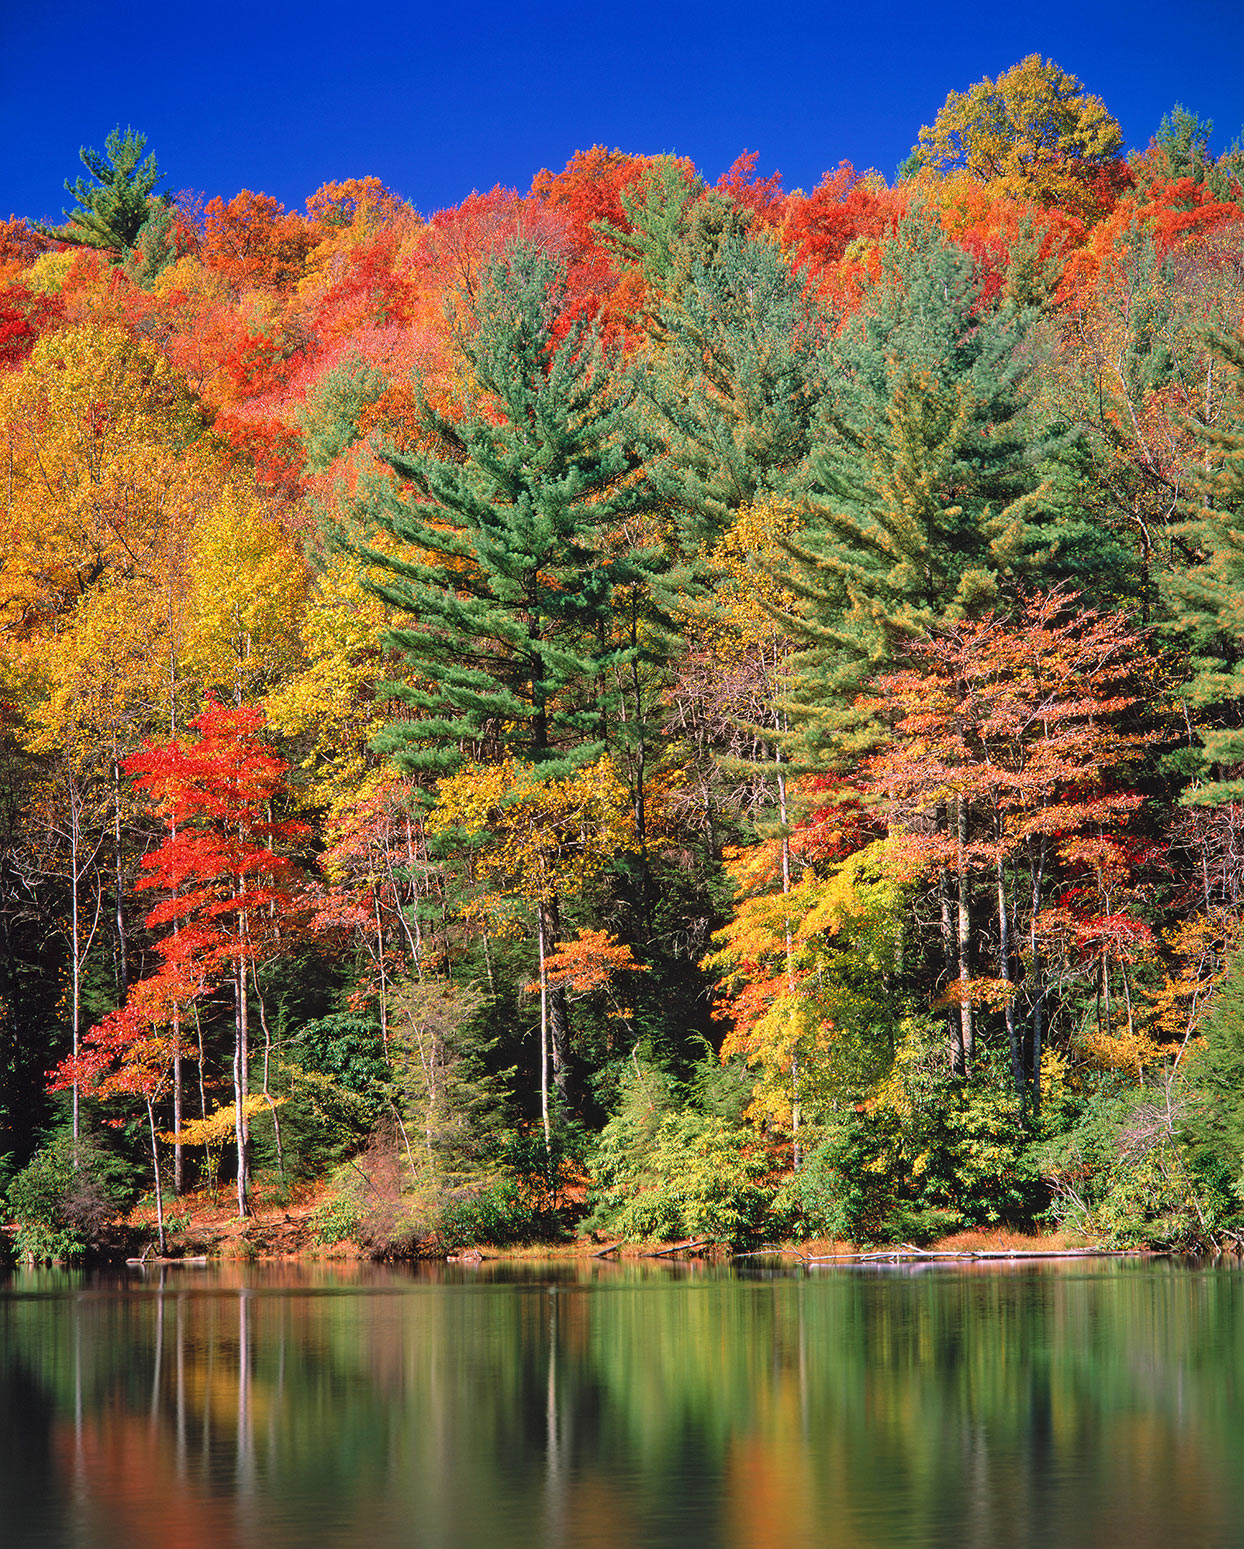 Chattahoochee National Forest, Georgia, Lake Conasauga, autumn